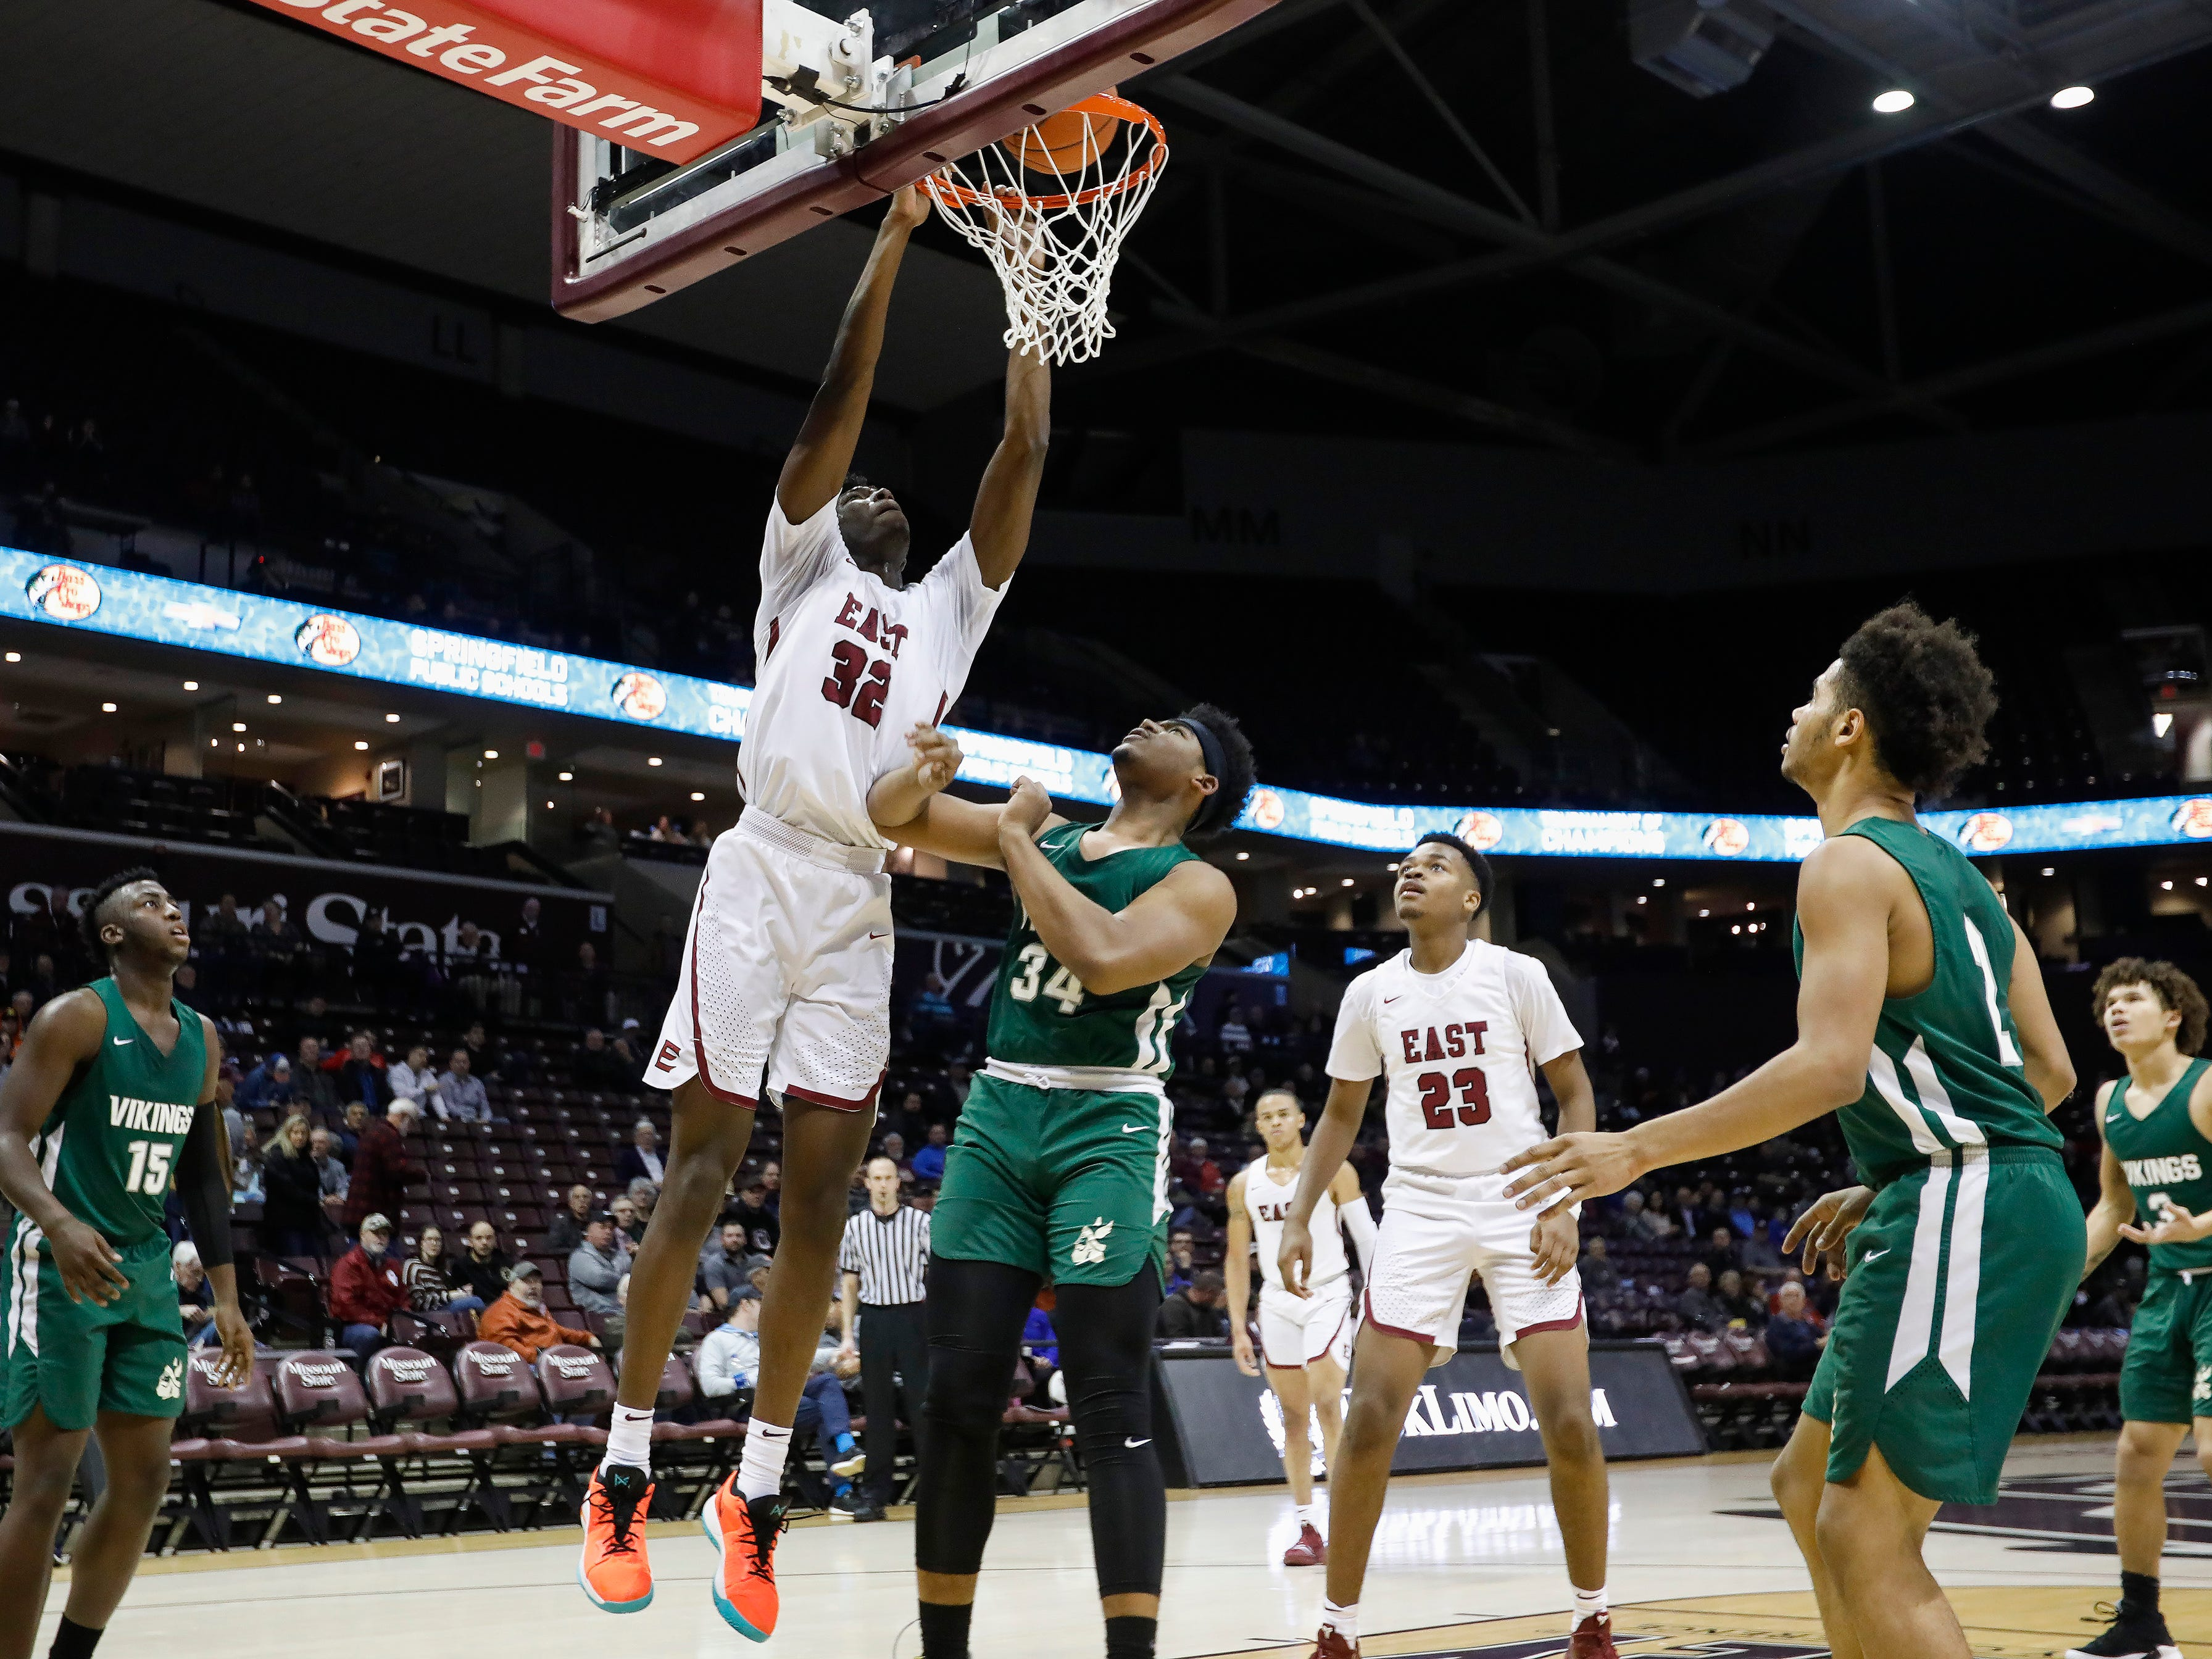 James Wiseman, of Memphis East High School, dunks the ball during the Mustang's game against Parkview in the Bass Pro Shops Tournament of Champions at JQH Arena on Thursday, Jan. 17, 2019.